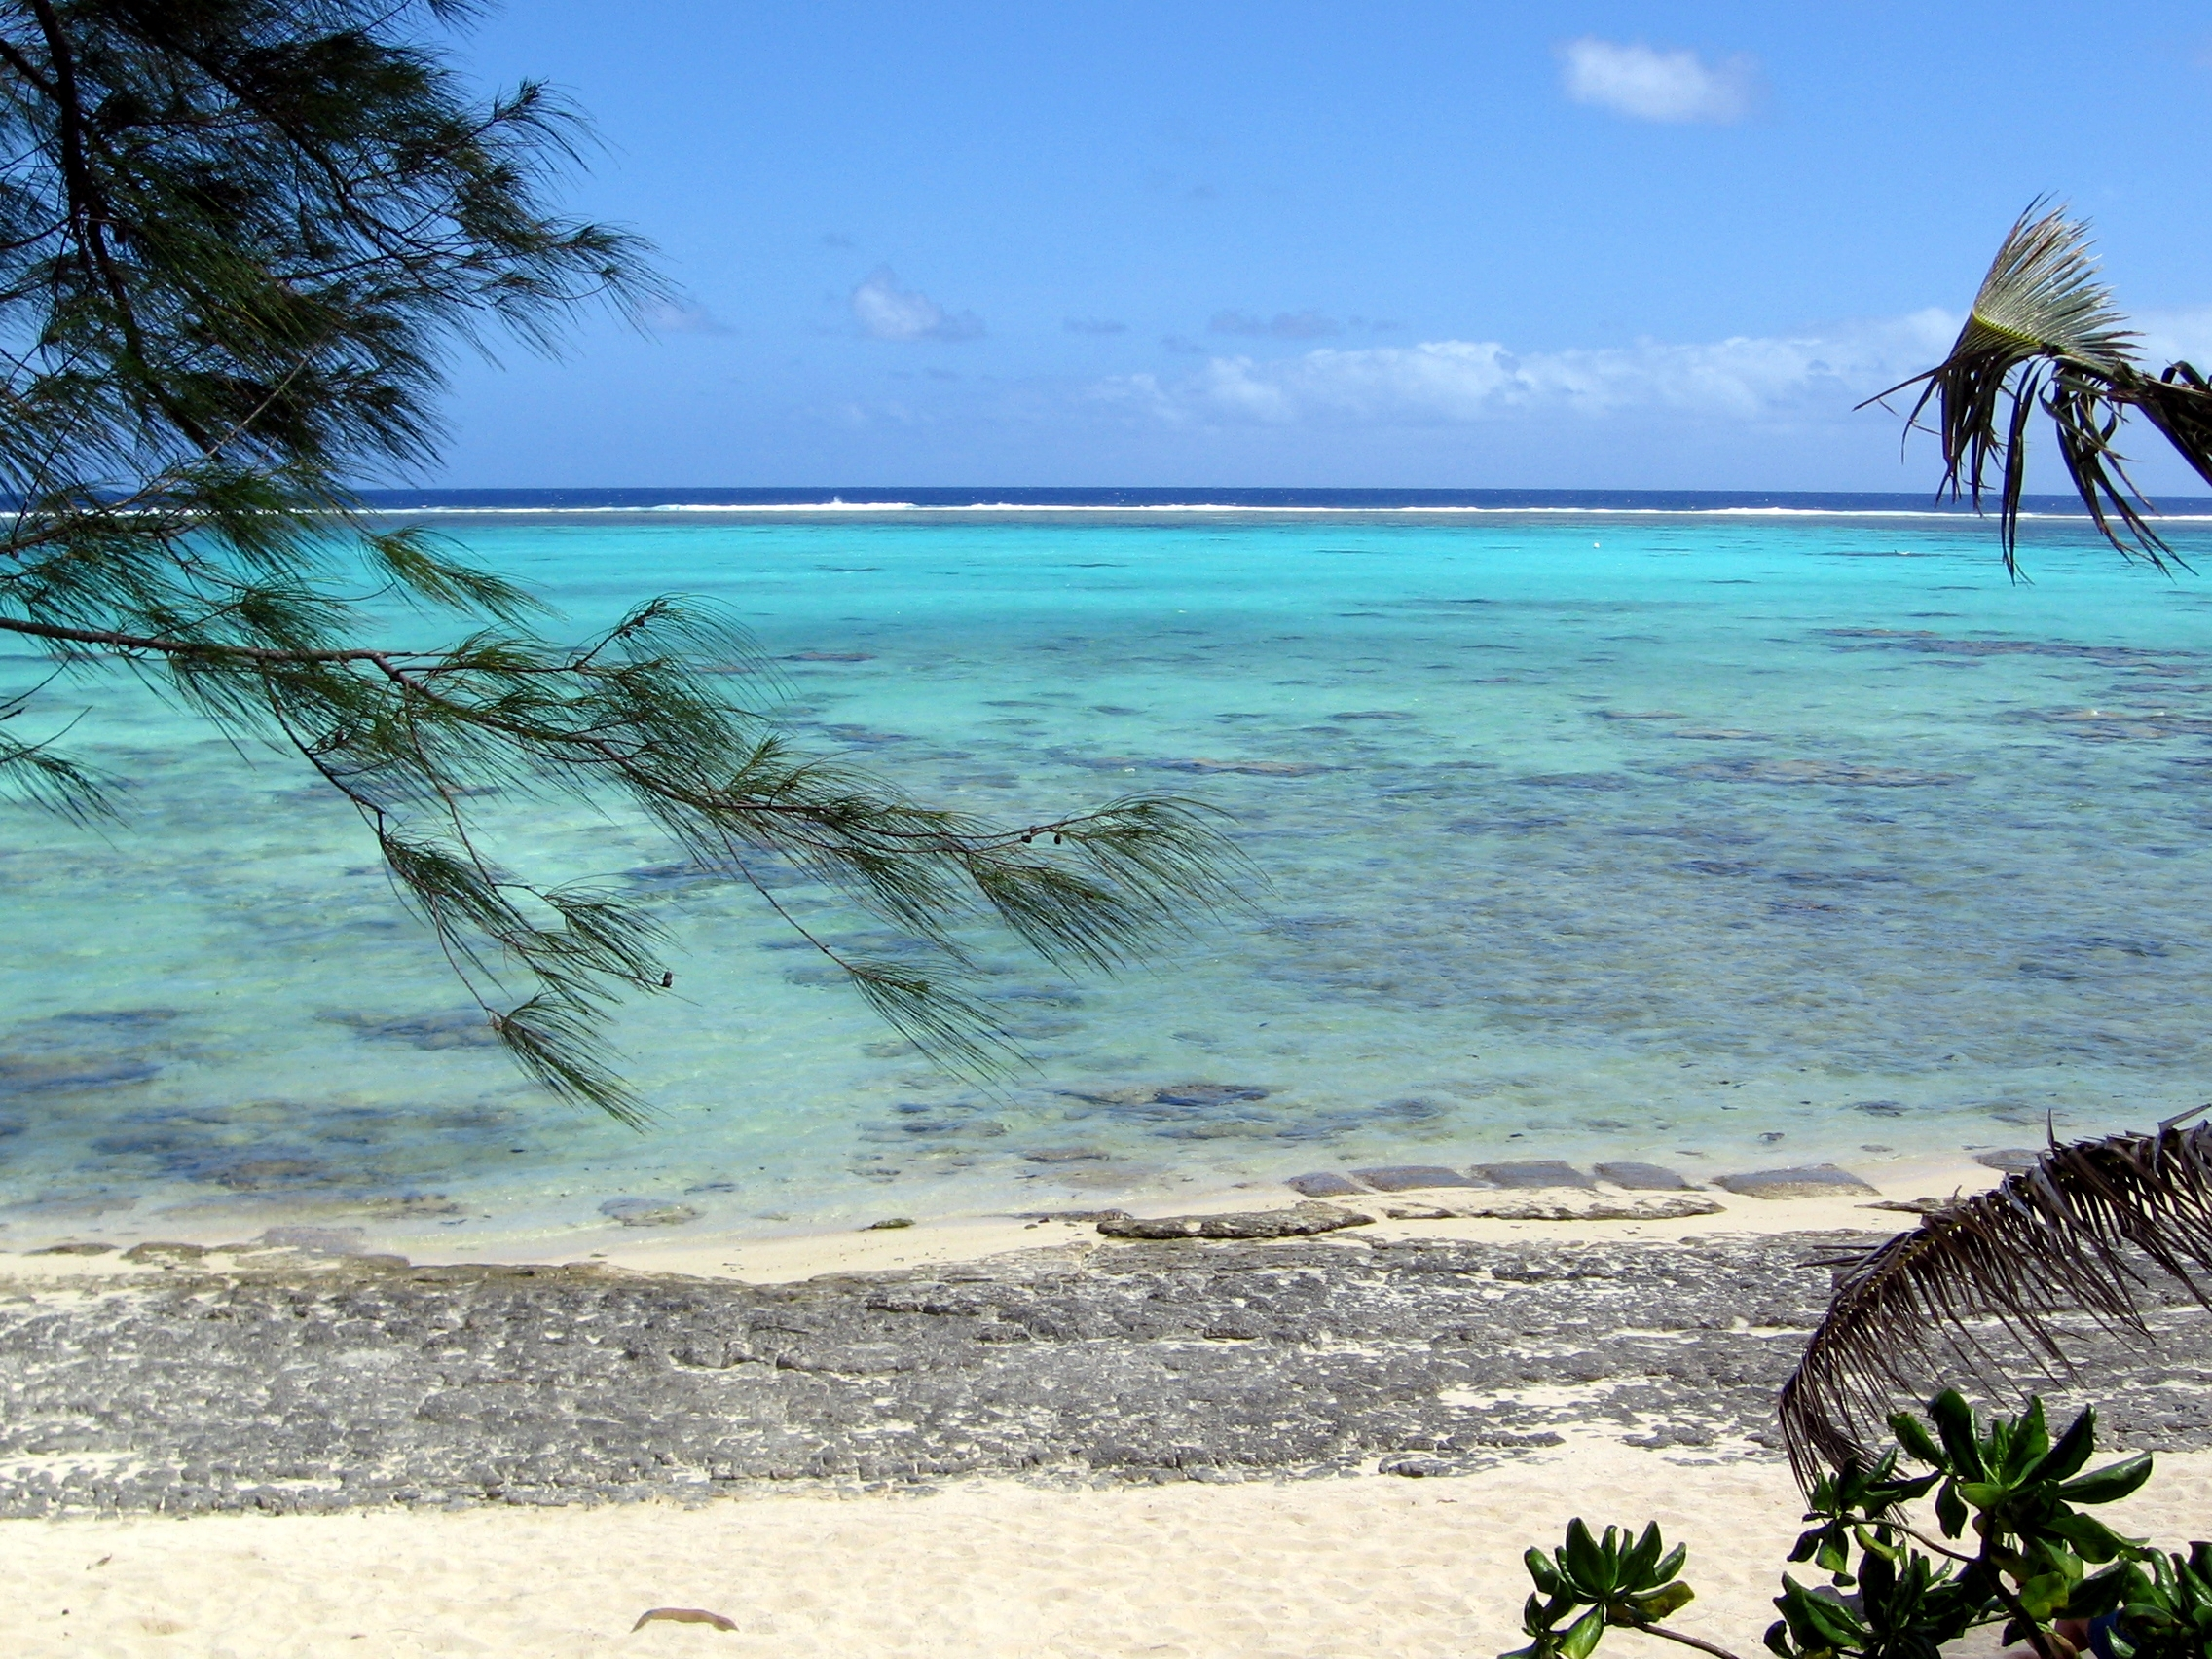 Rarotonga Cook Islands  city pictures gallery : ... Good snorkelling spot, Rarotonga, Cook Islands Wikimedia Commons